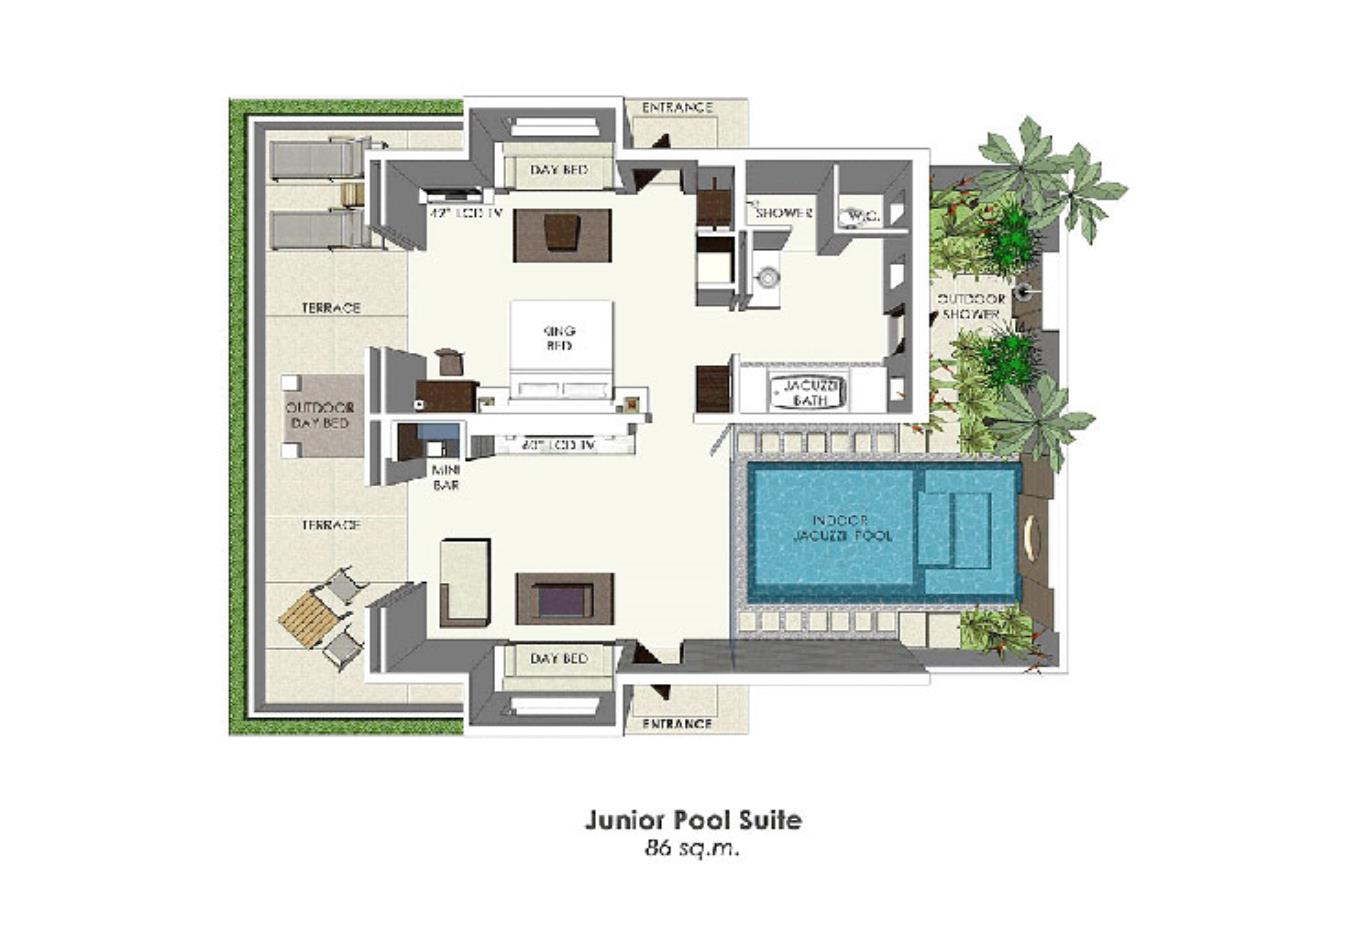 Junior Pool Suite floorplan